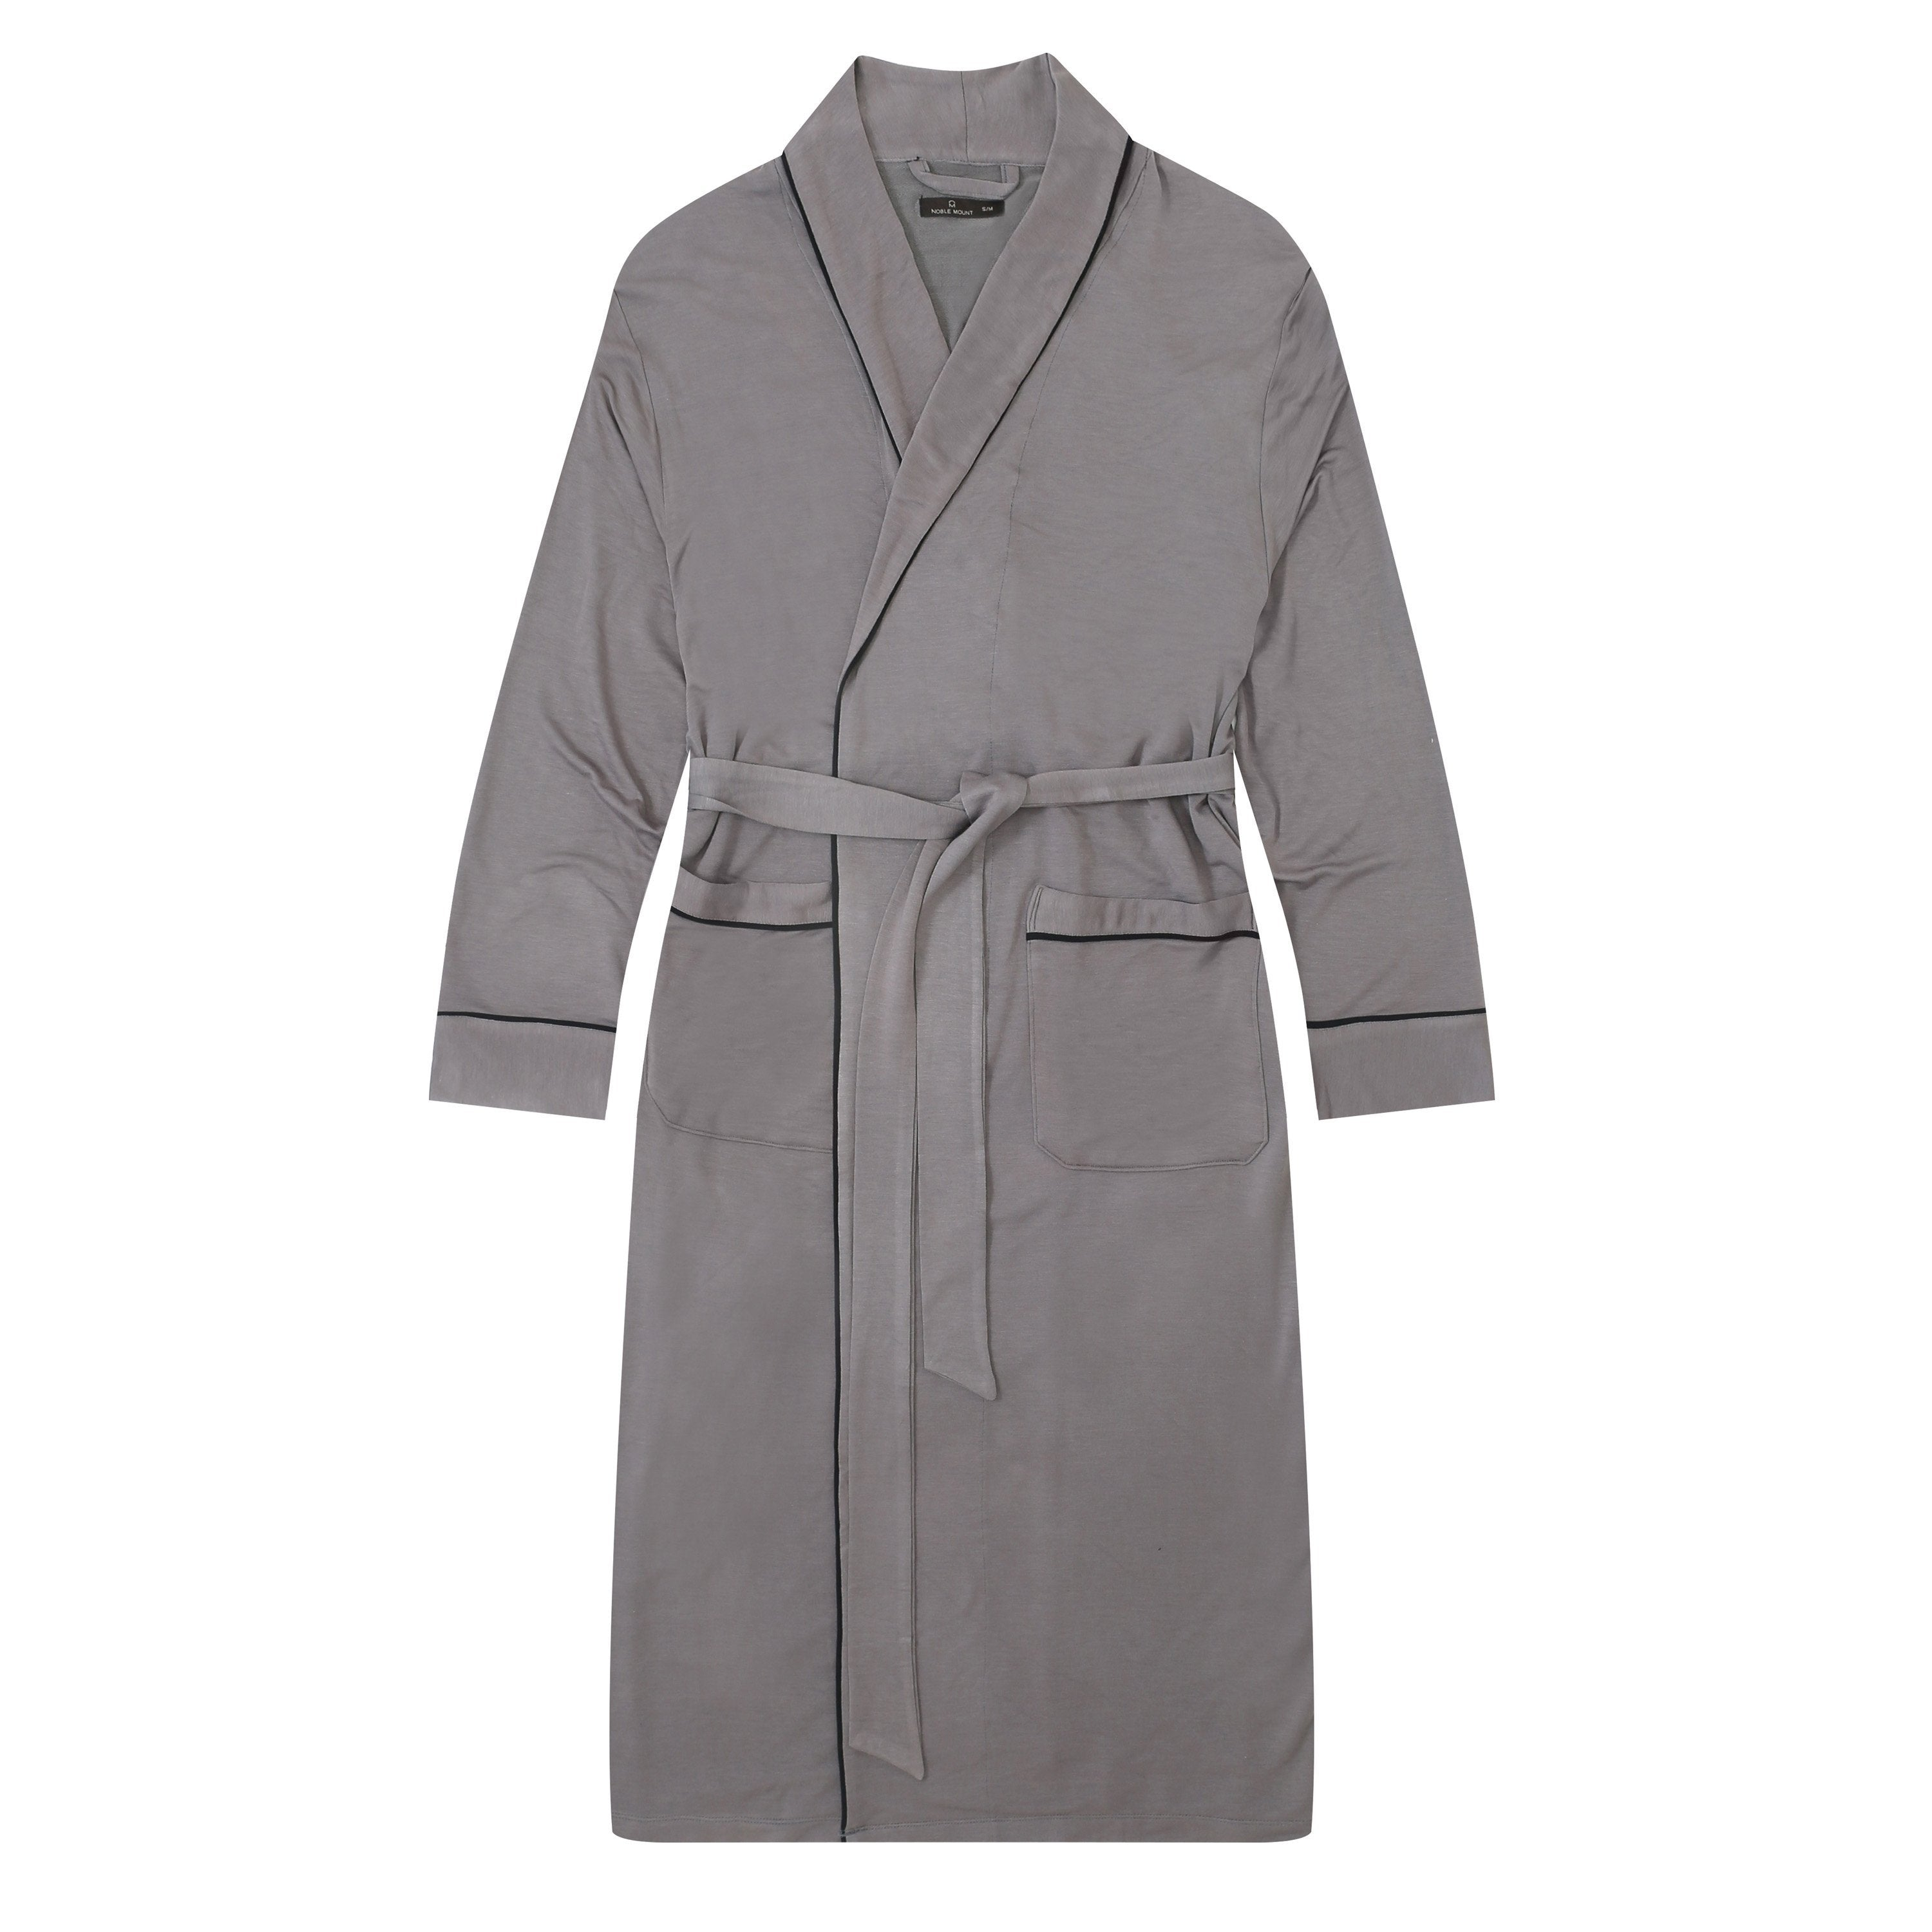 Men's Jersey Knit French Terry Robe